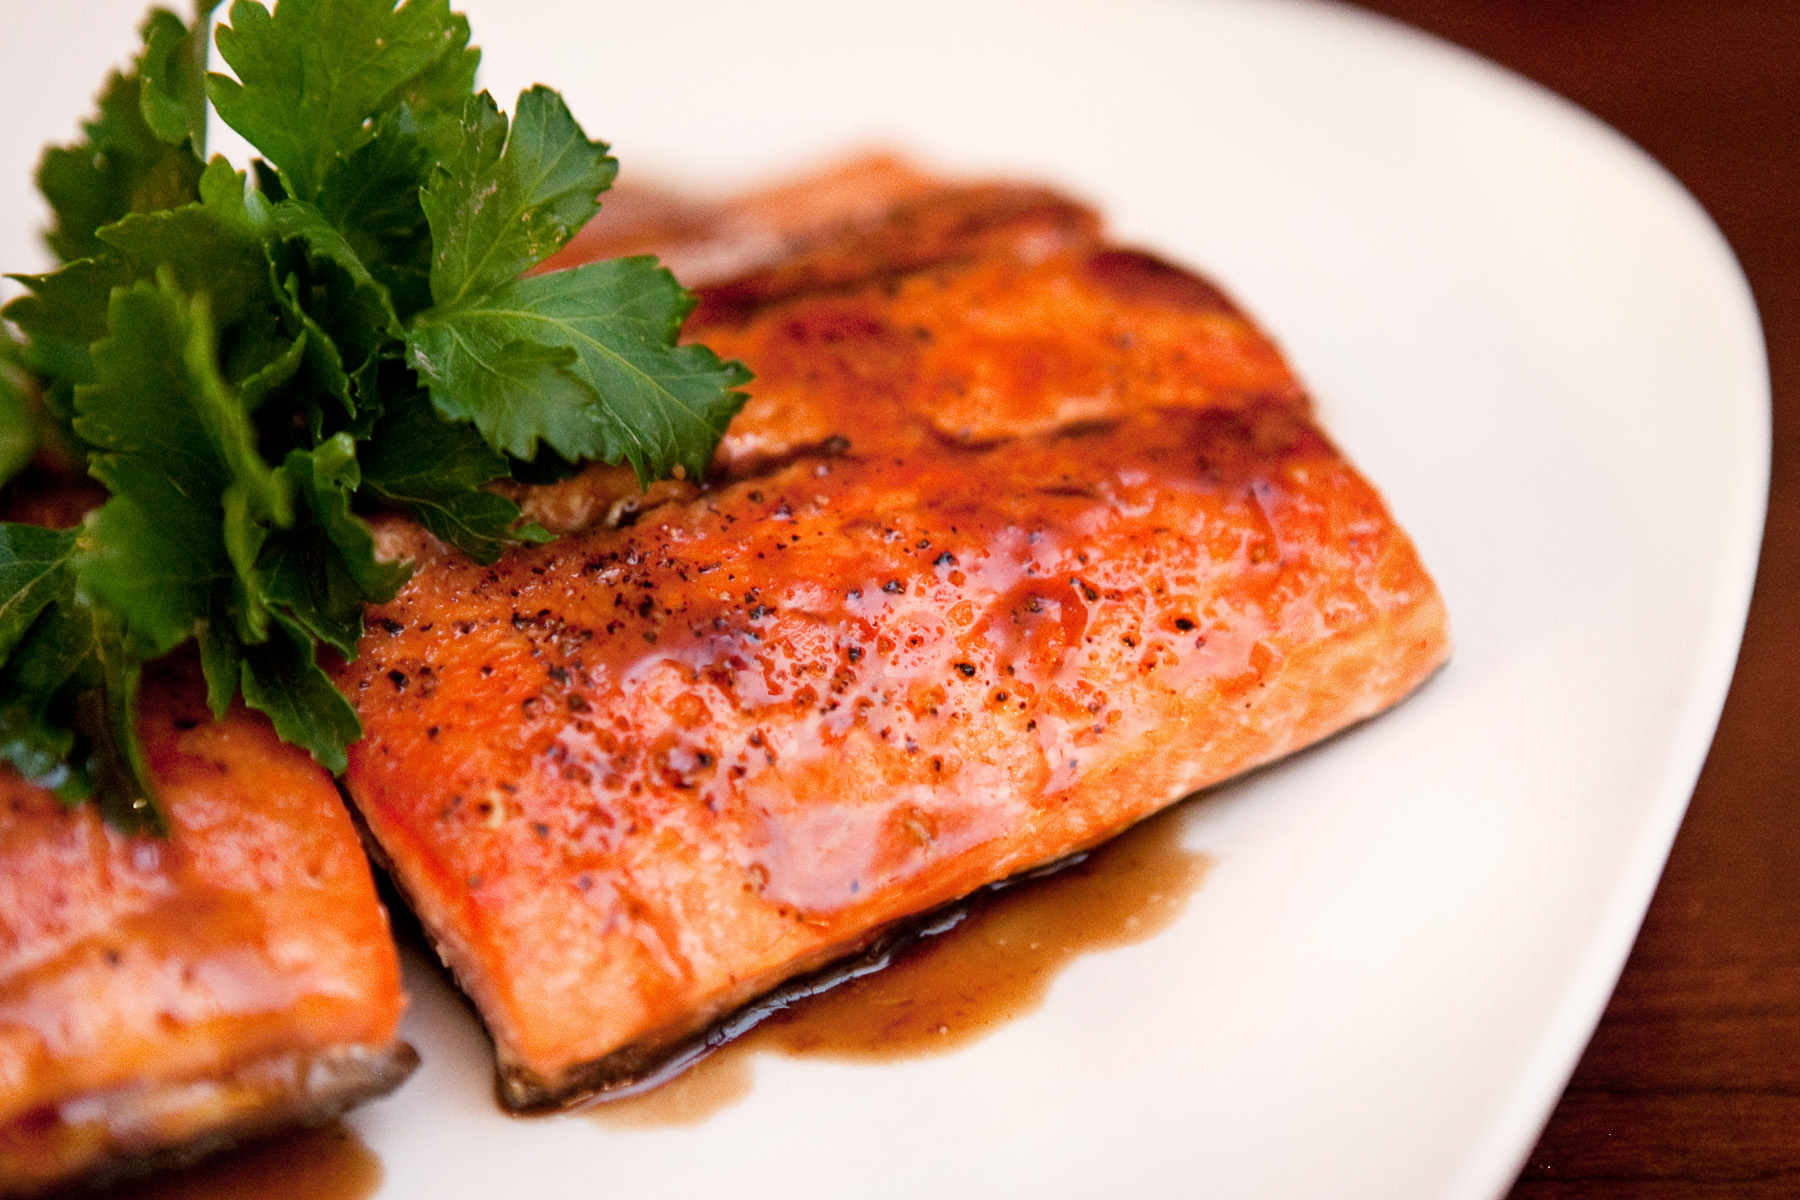 Seared Salmon With Balsamic Glaze Recipe